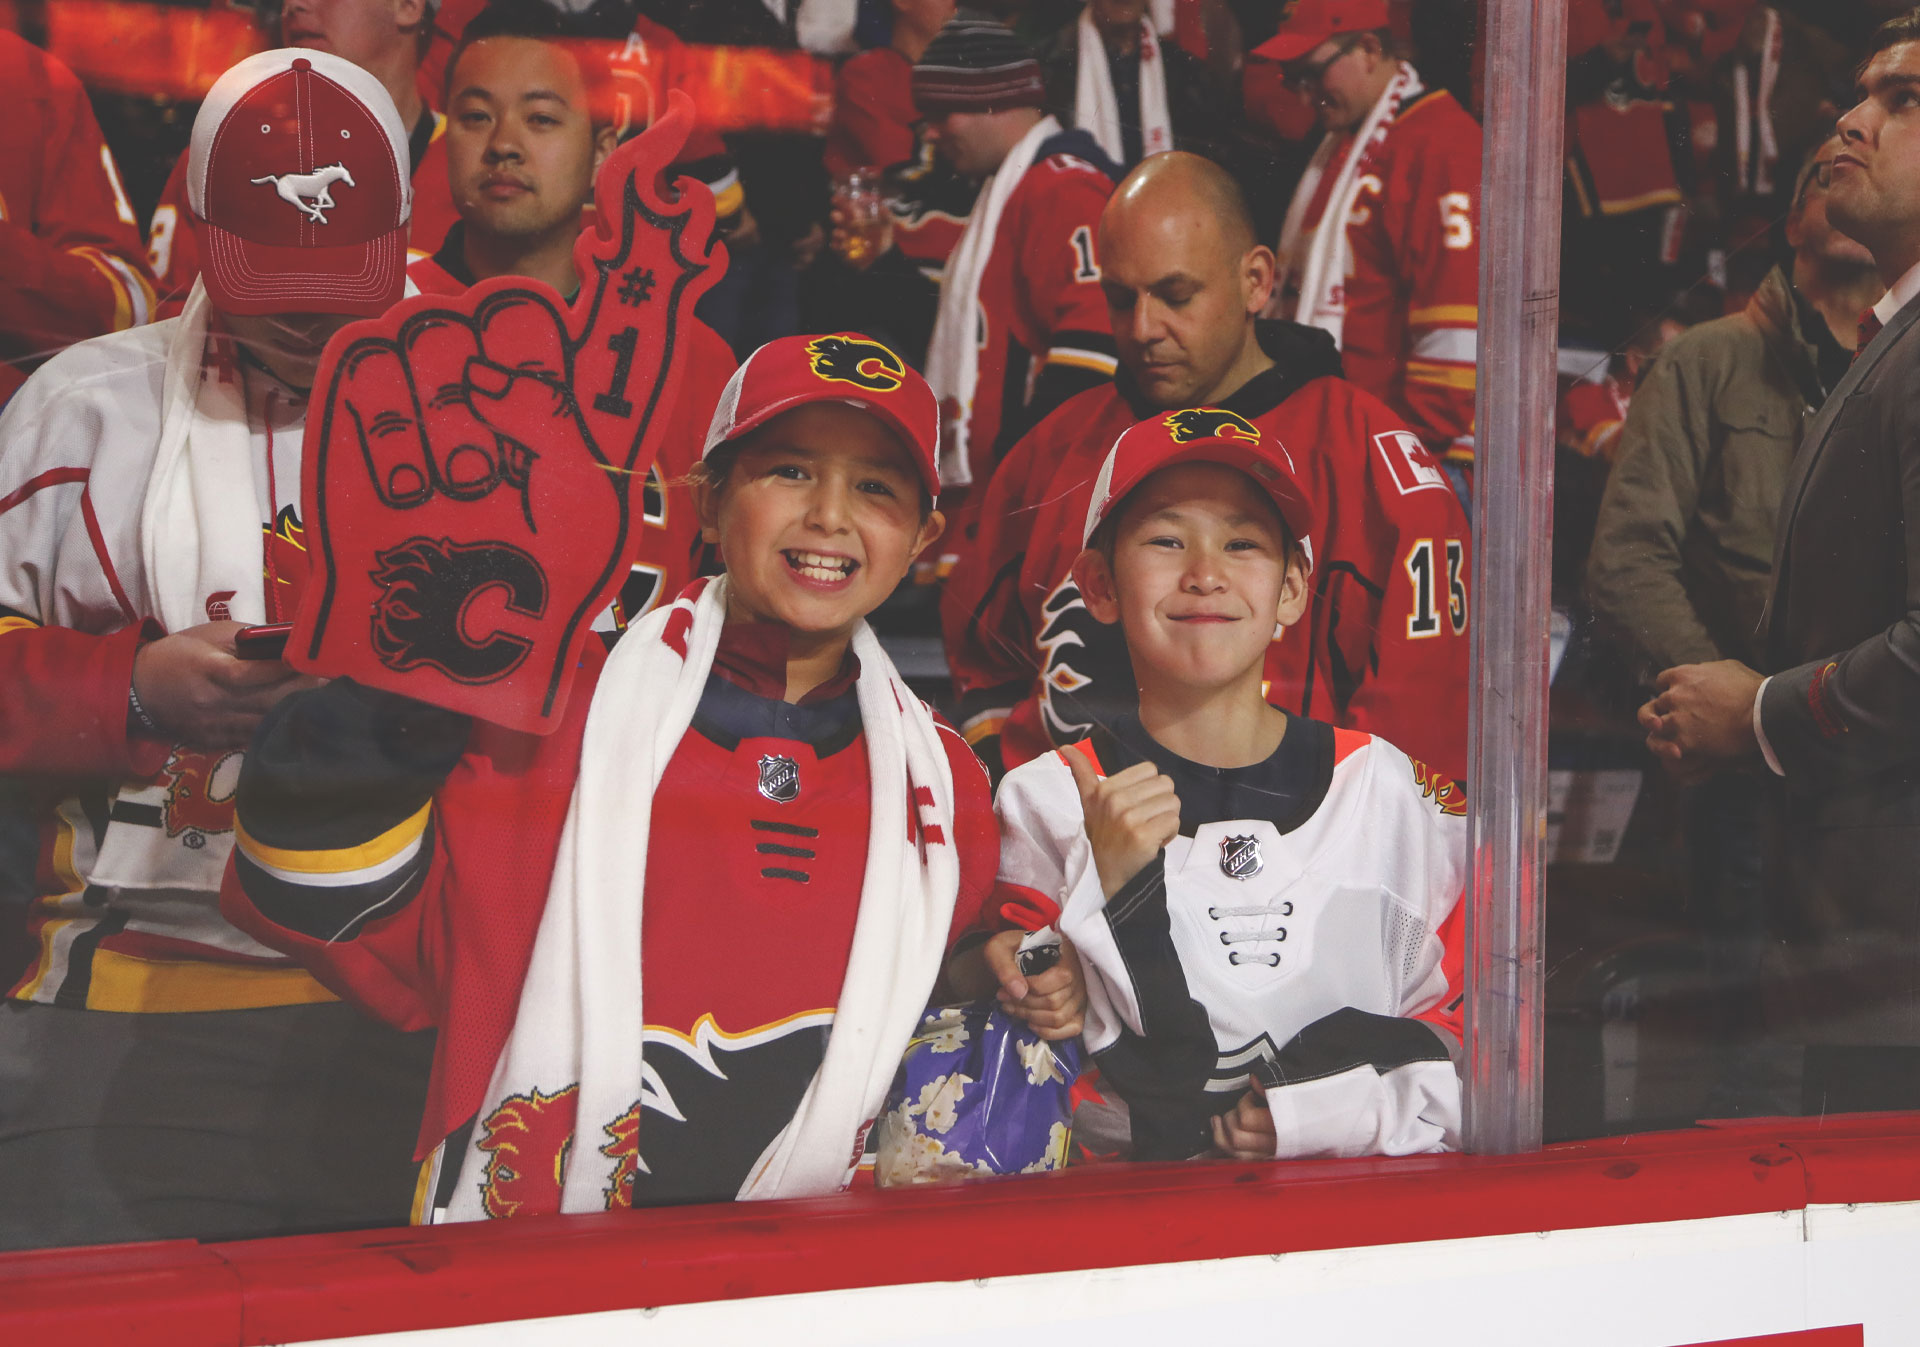 NHL action with the Calgary Flames